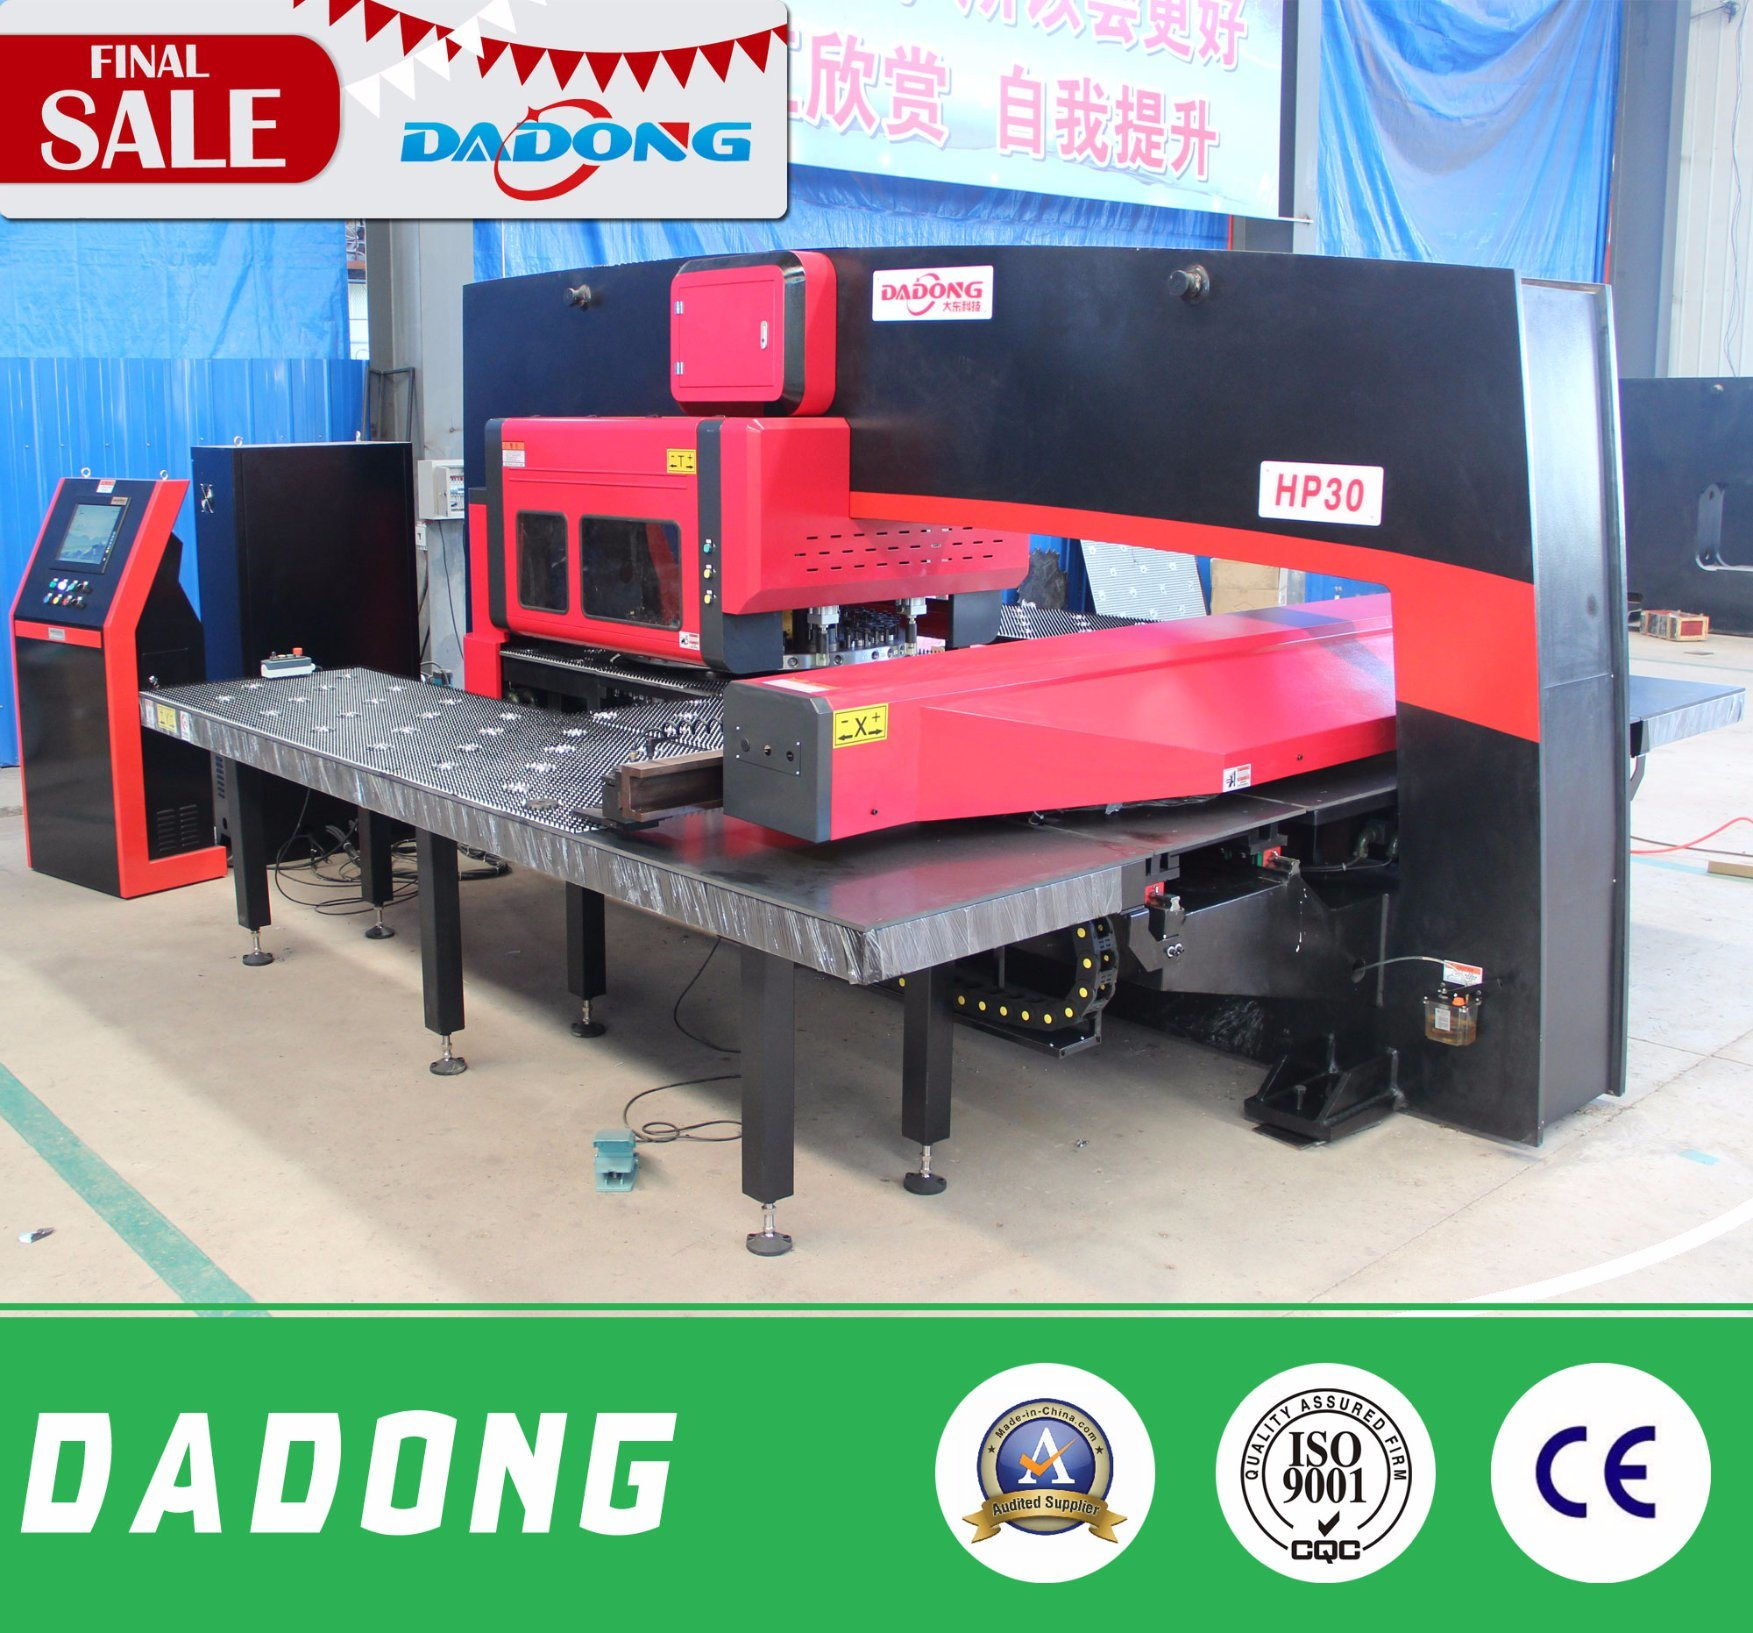 HP30 ISO9001 Machinery Metal Perforator/CNC Turret Punching Machine